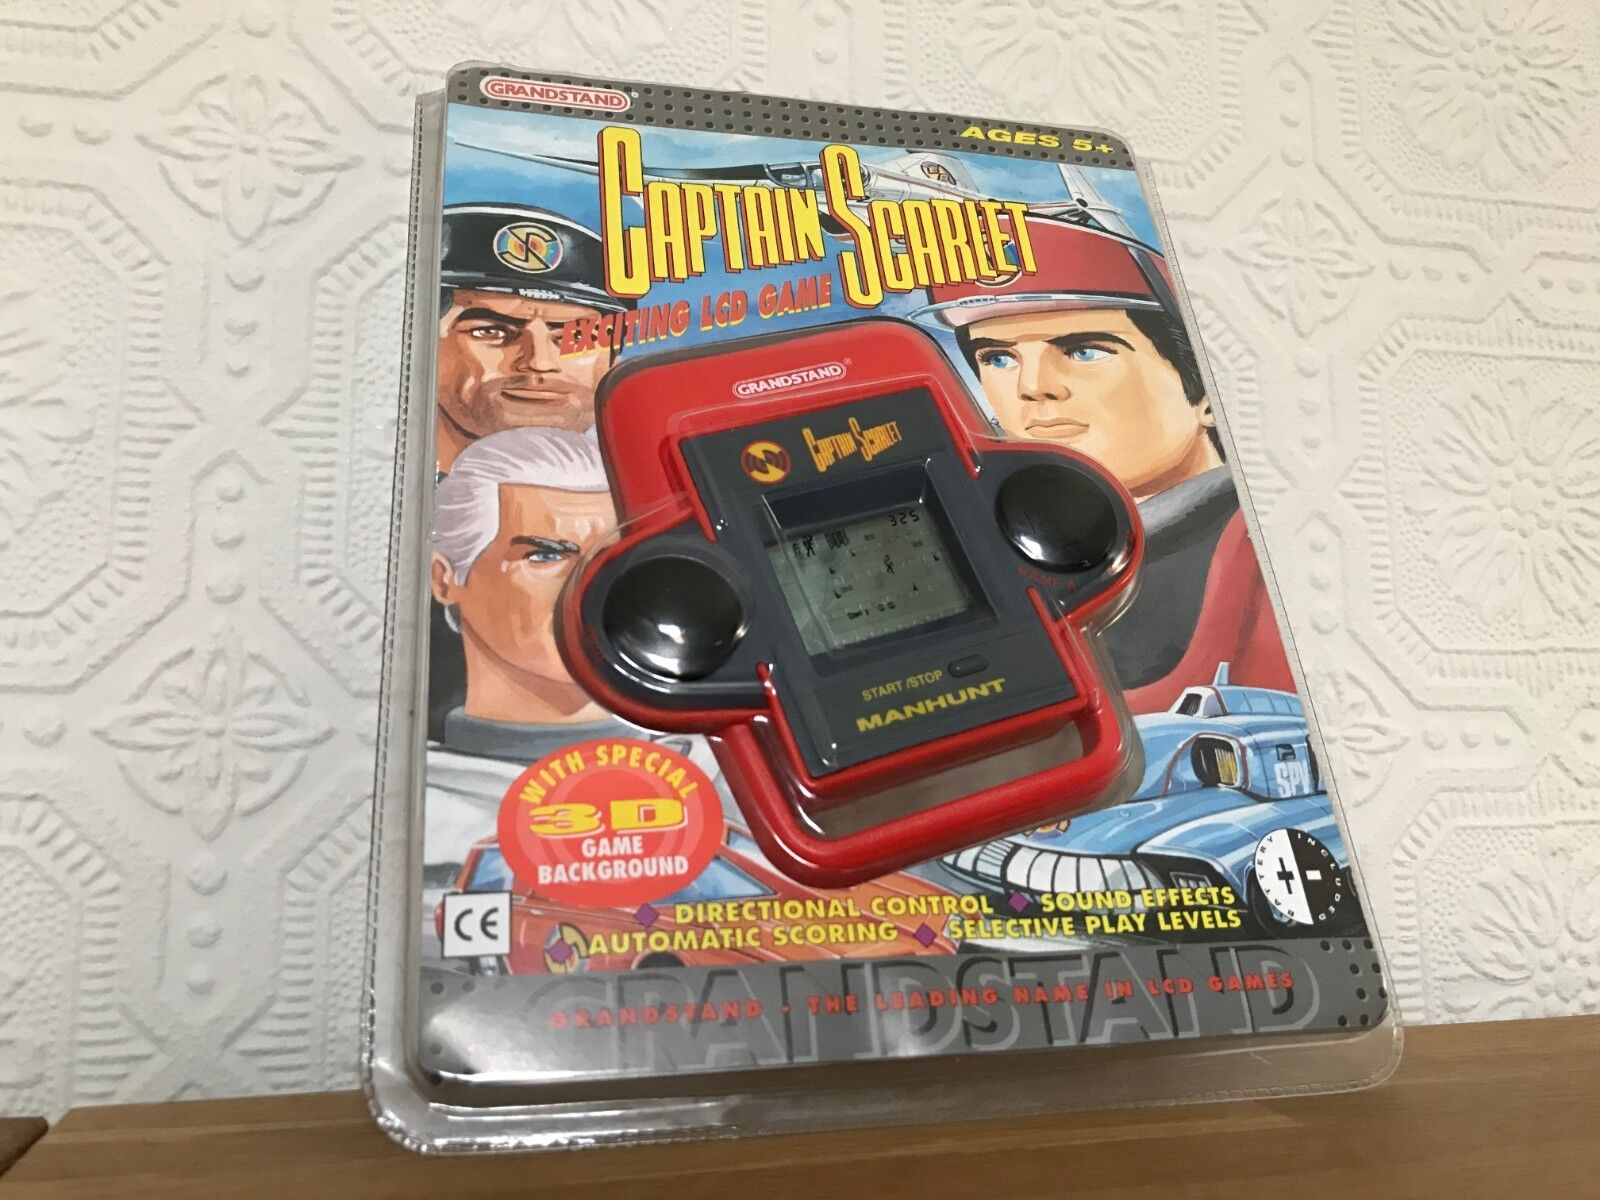 Grandstand Captain Scarlet Vintage 1990's LCD Handheld Electronic Game - Mint